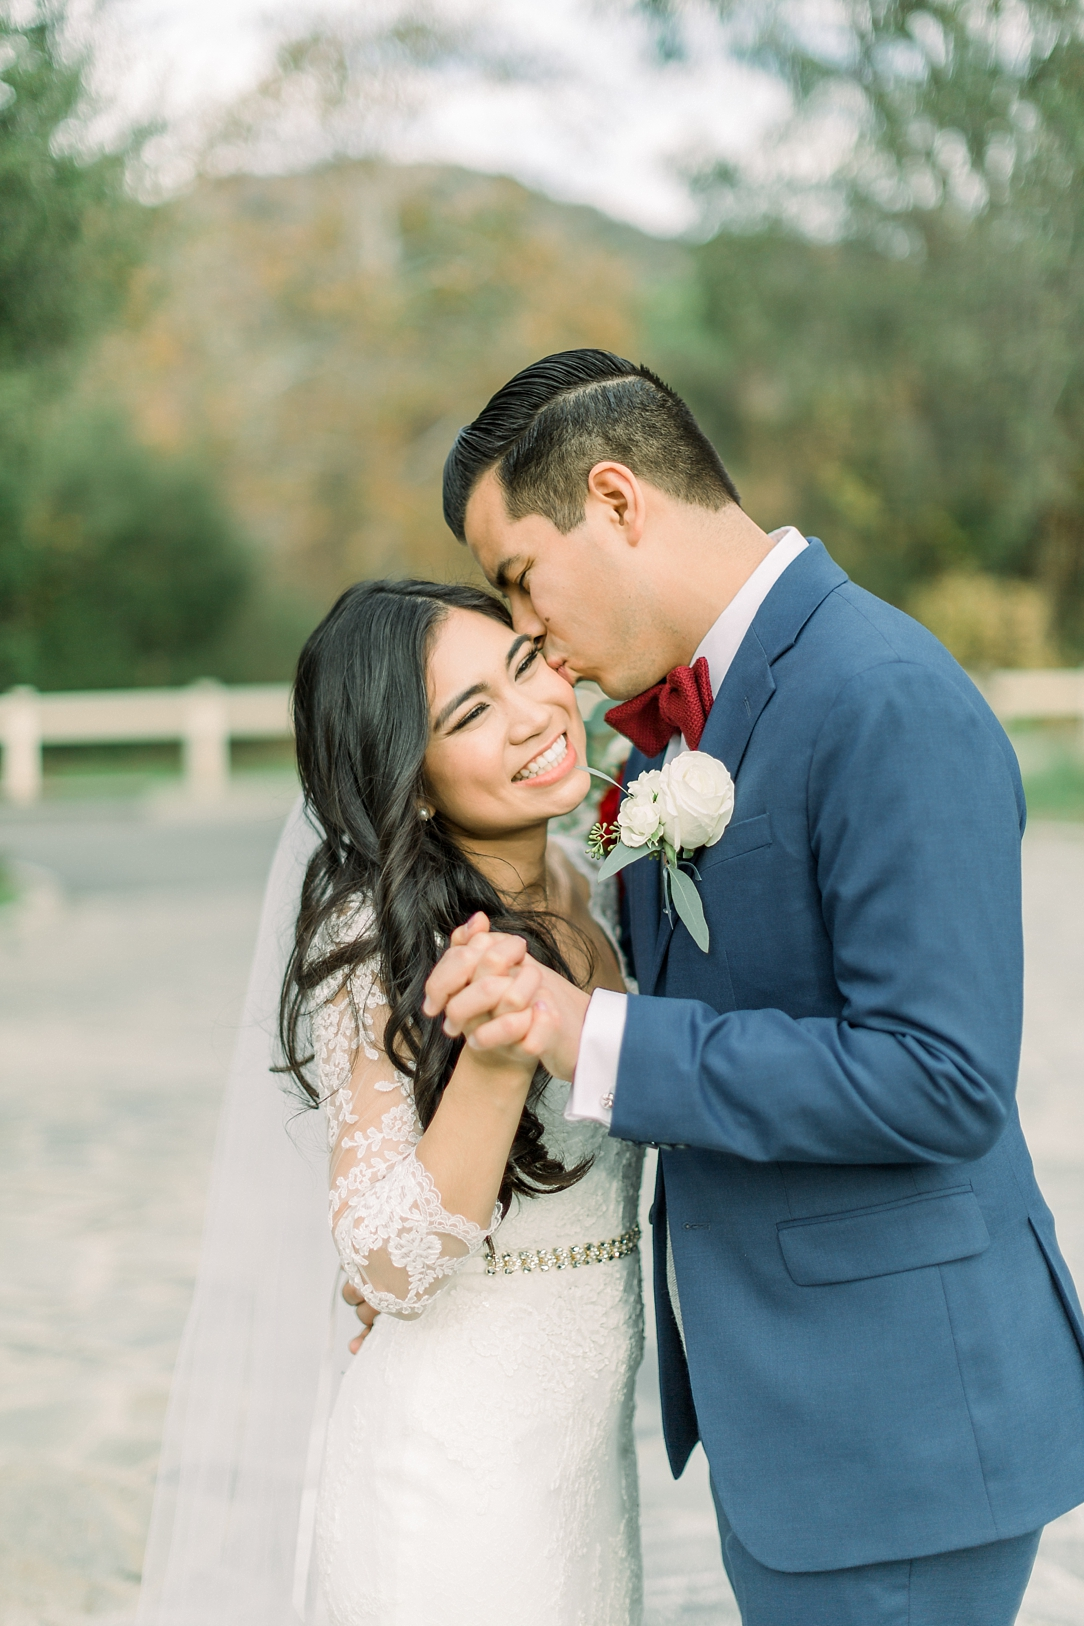 A Vintage Inspired Wedding At Santiago Oaks Regional Park And The Vintage Rose By Natural Light Photographer Madison Ellis Photography. (46)